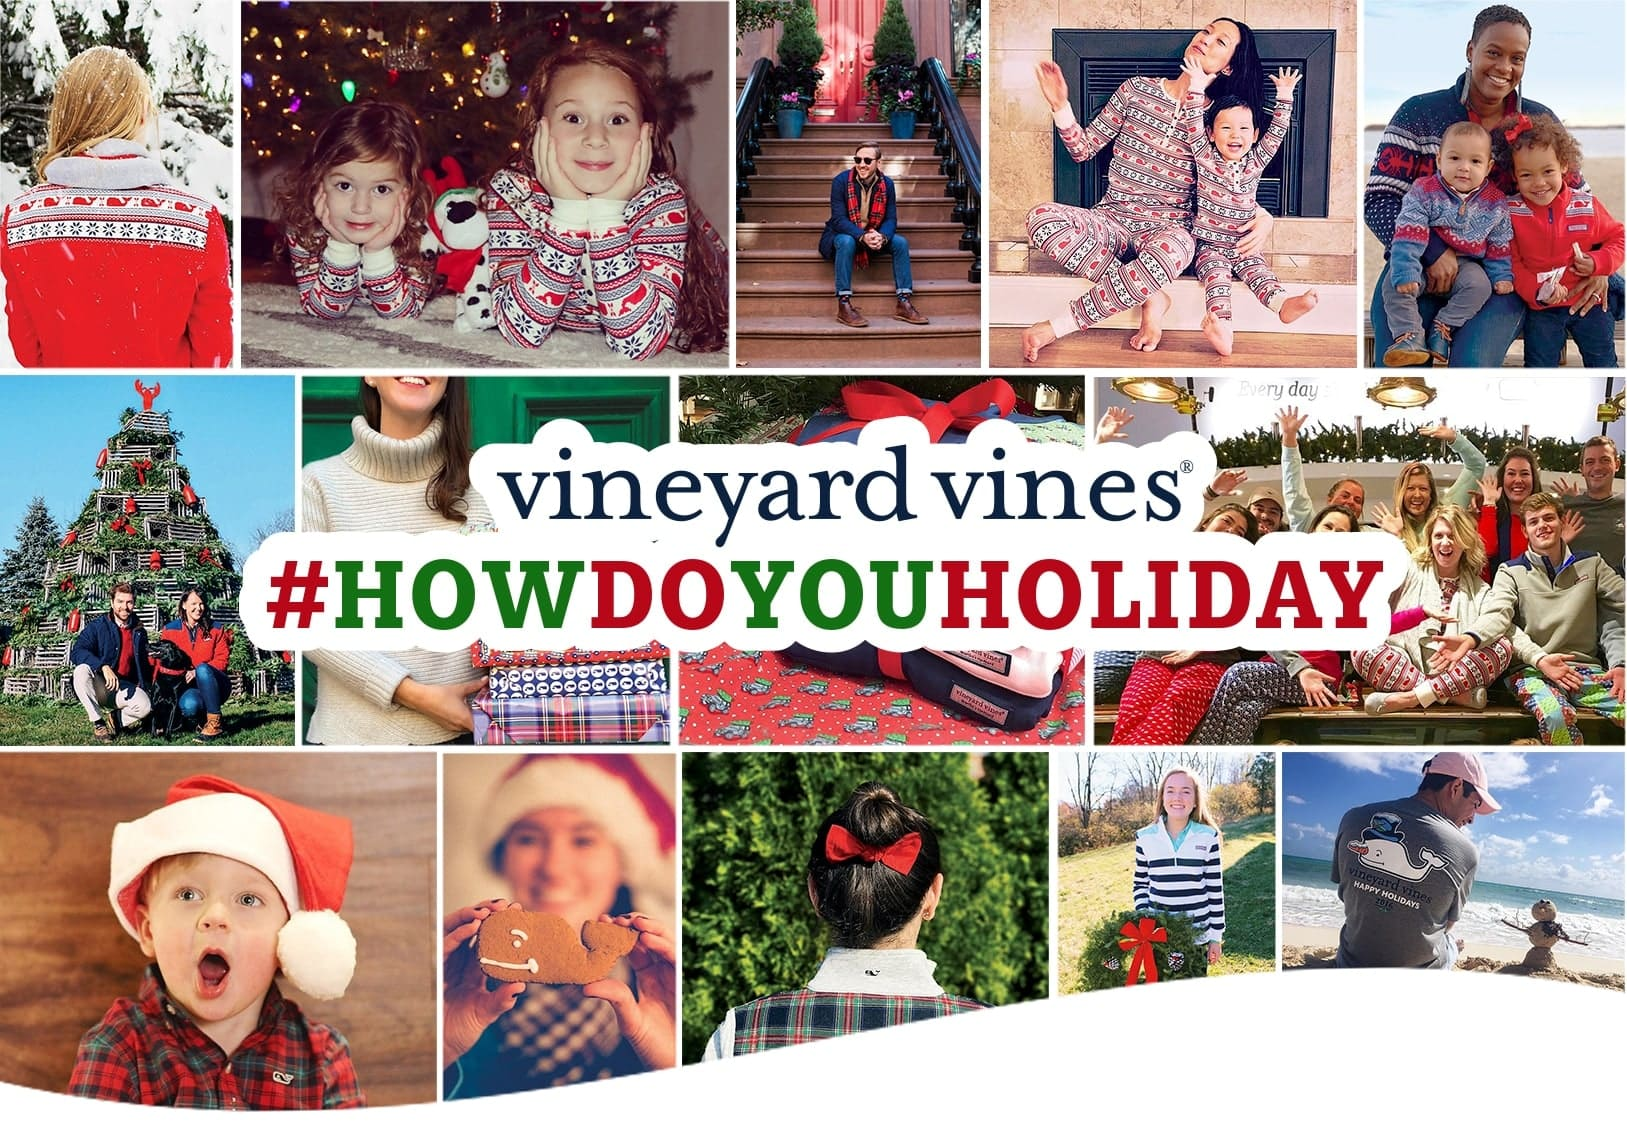 vineyard vines #howdoyouholiday